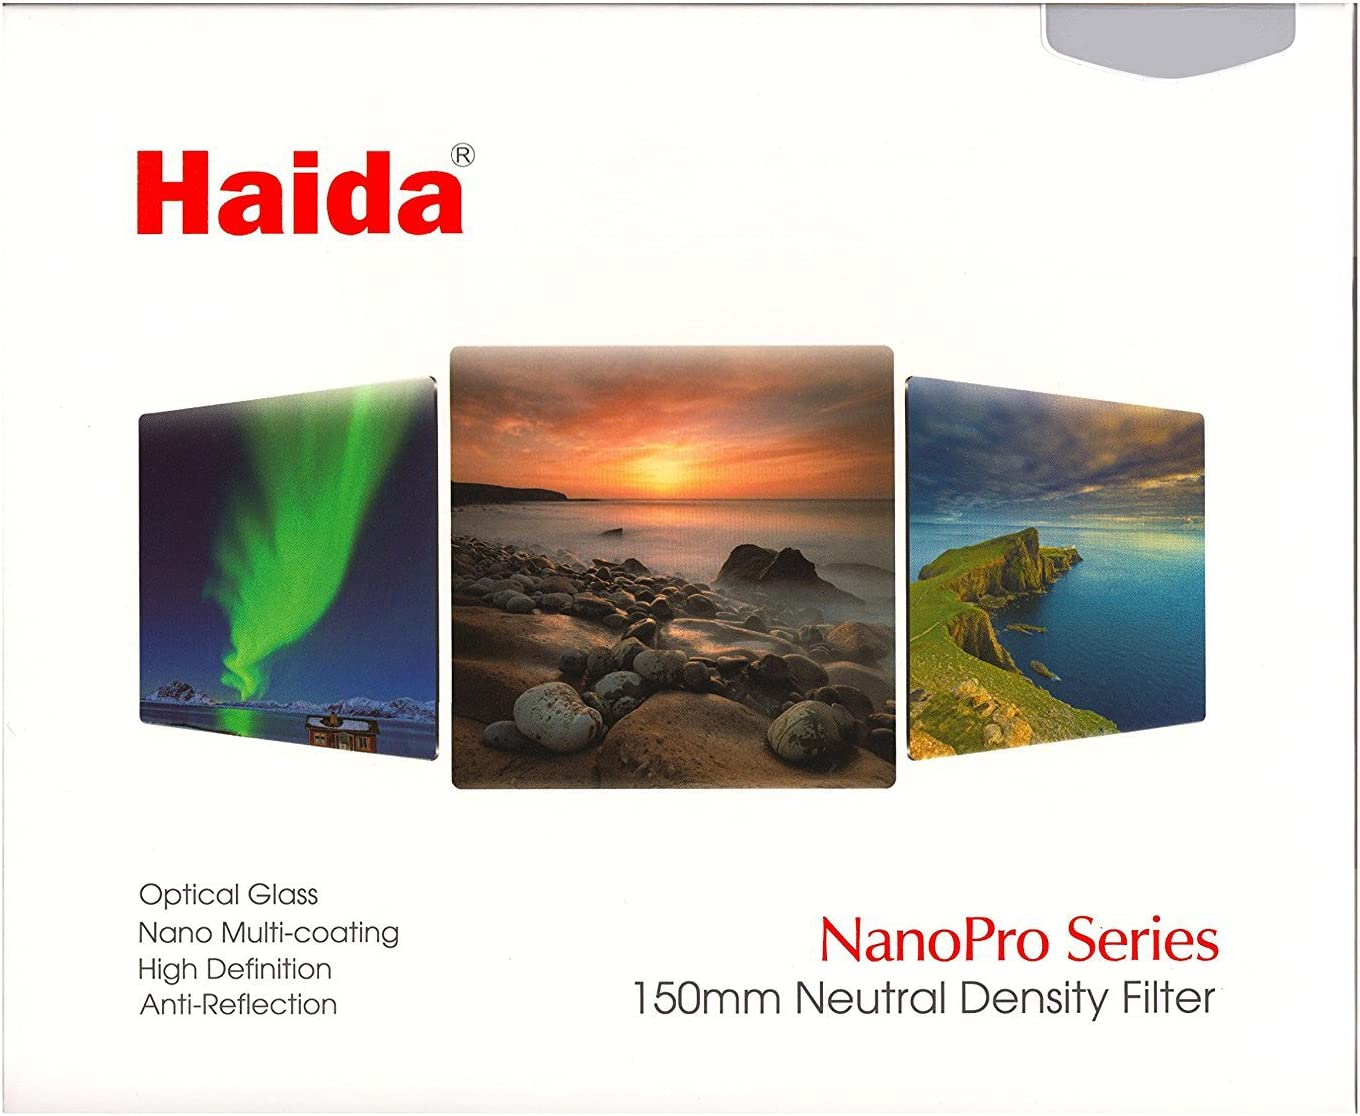 Haida NanoPro 150mm MC Neutral Density ND16 ND 1.2 Optical Glass Filter 150 4 Stop HD3323